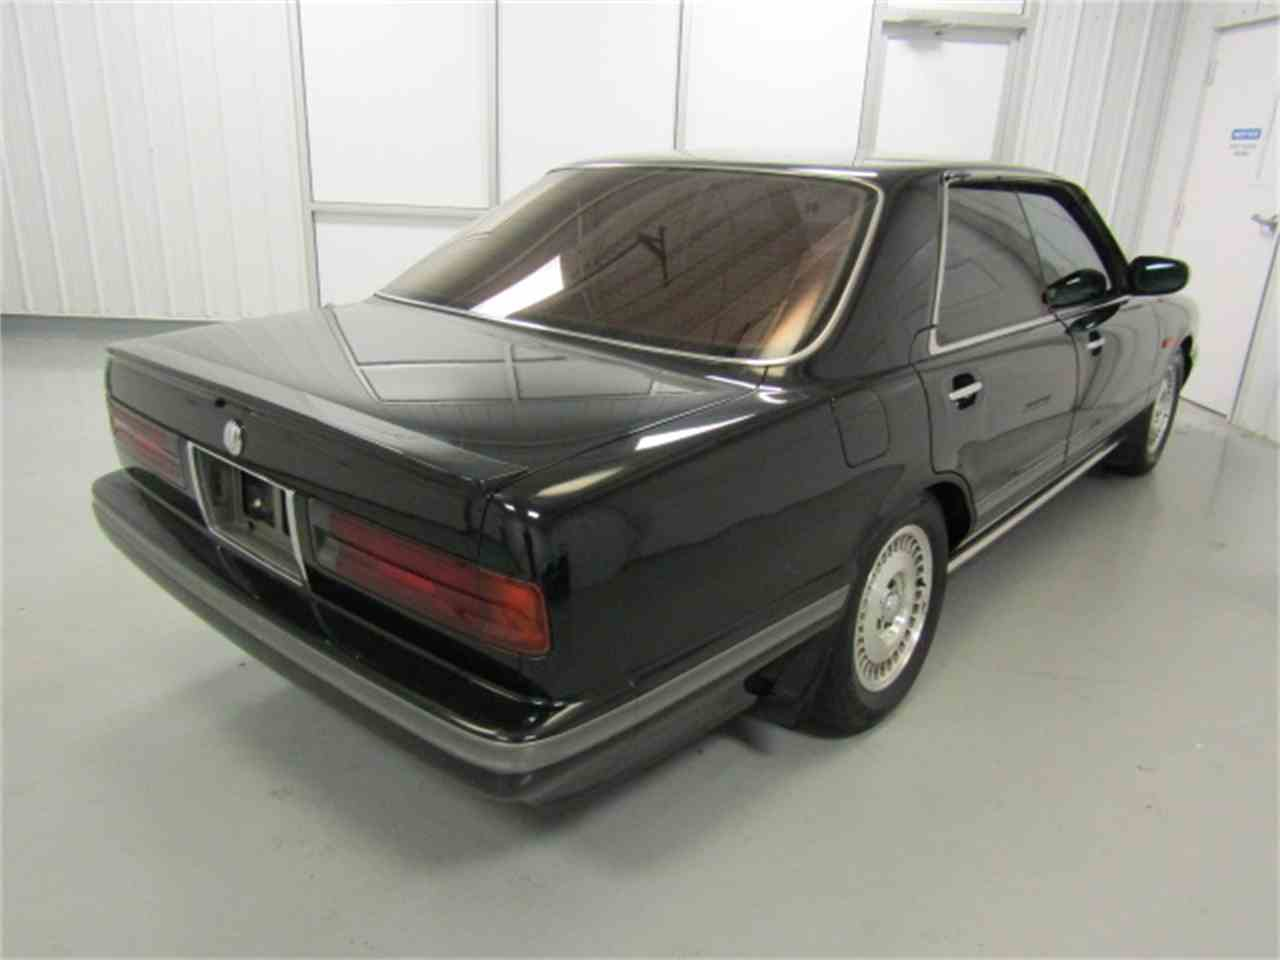 Large Picture of '90 Nissan Cima located in Christiansburg Virginia - $5,990.00 - JLDM